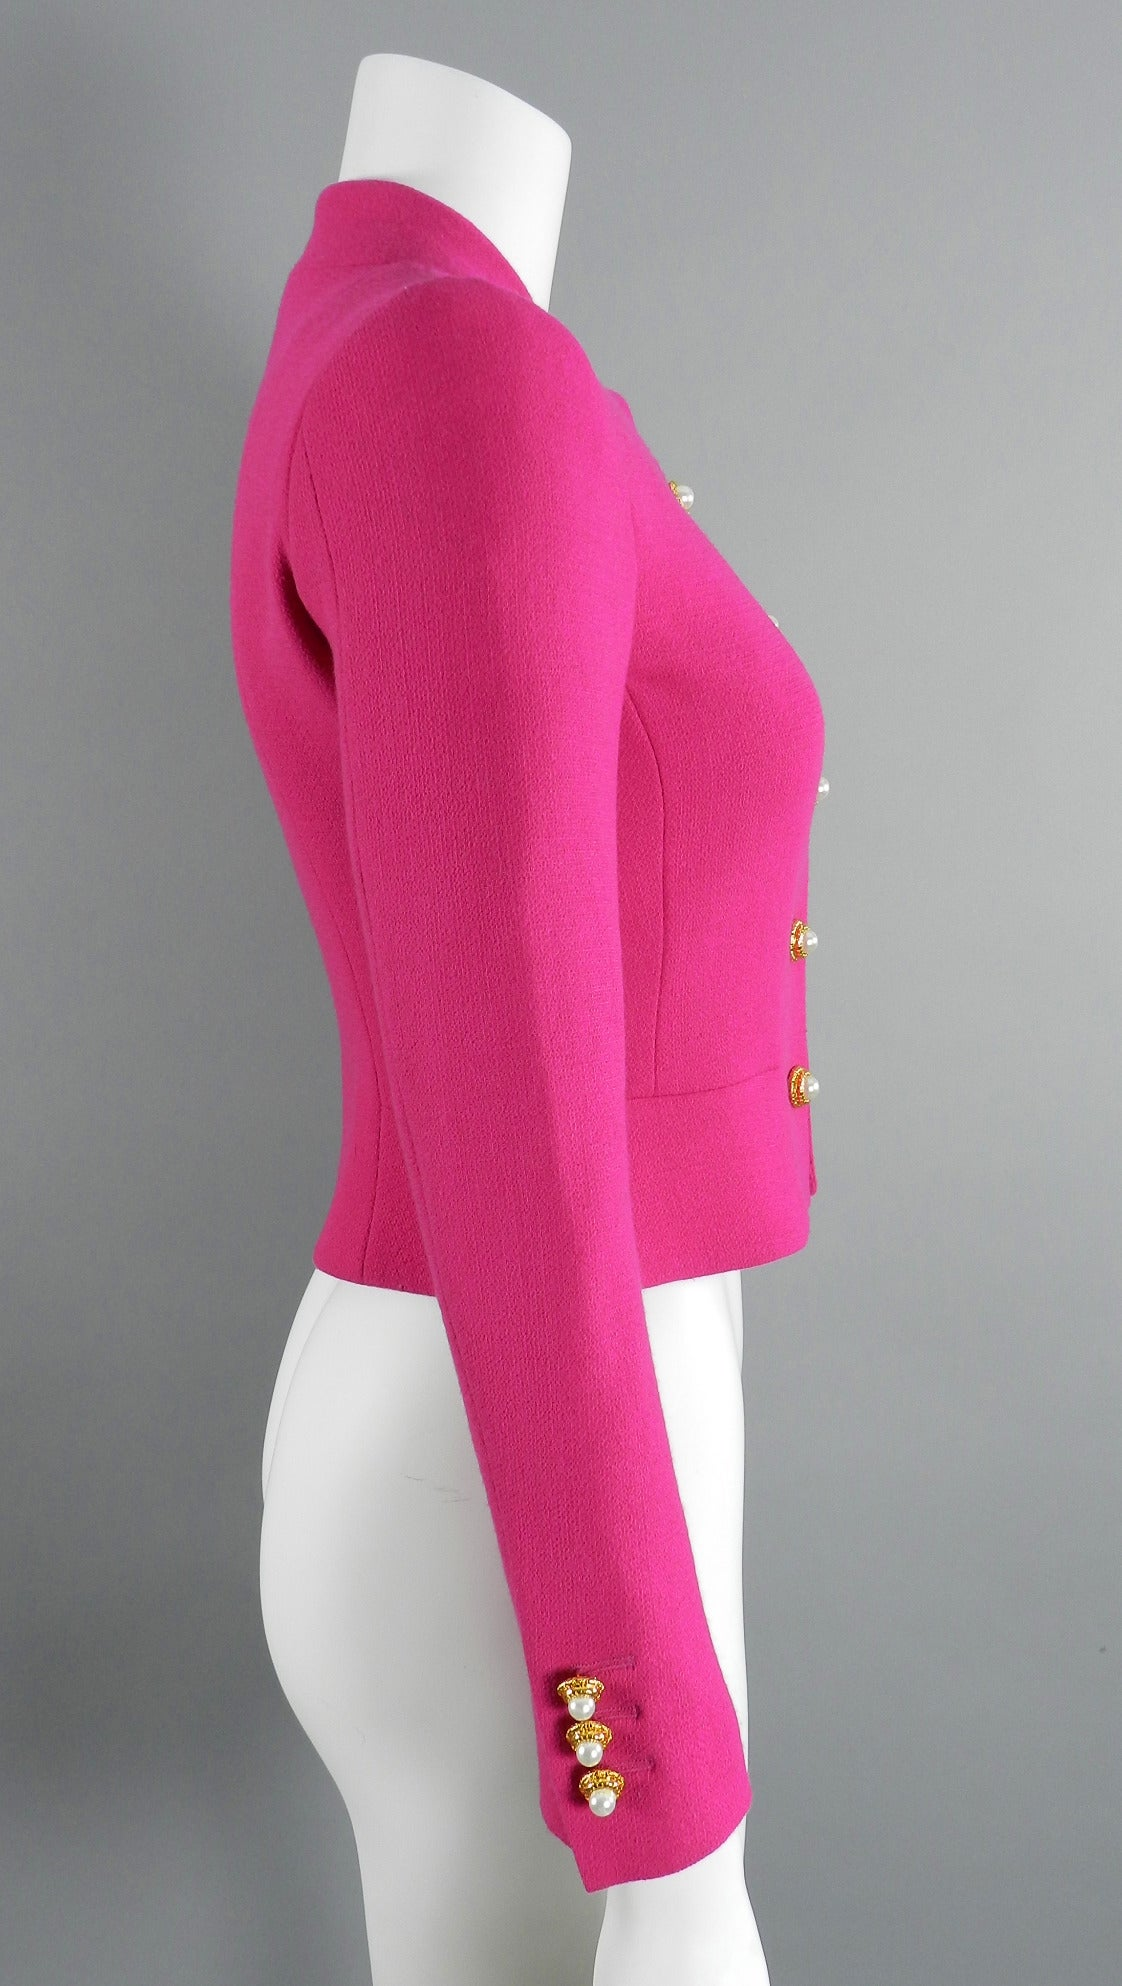 Moschino Hot Fuchsia Pink Jacket with Gold and Pearl Toggles 2